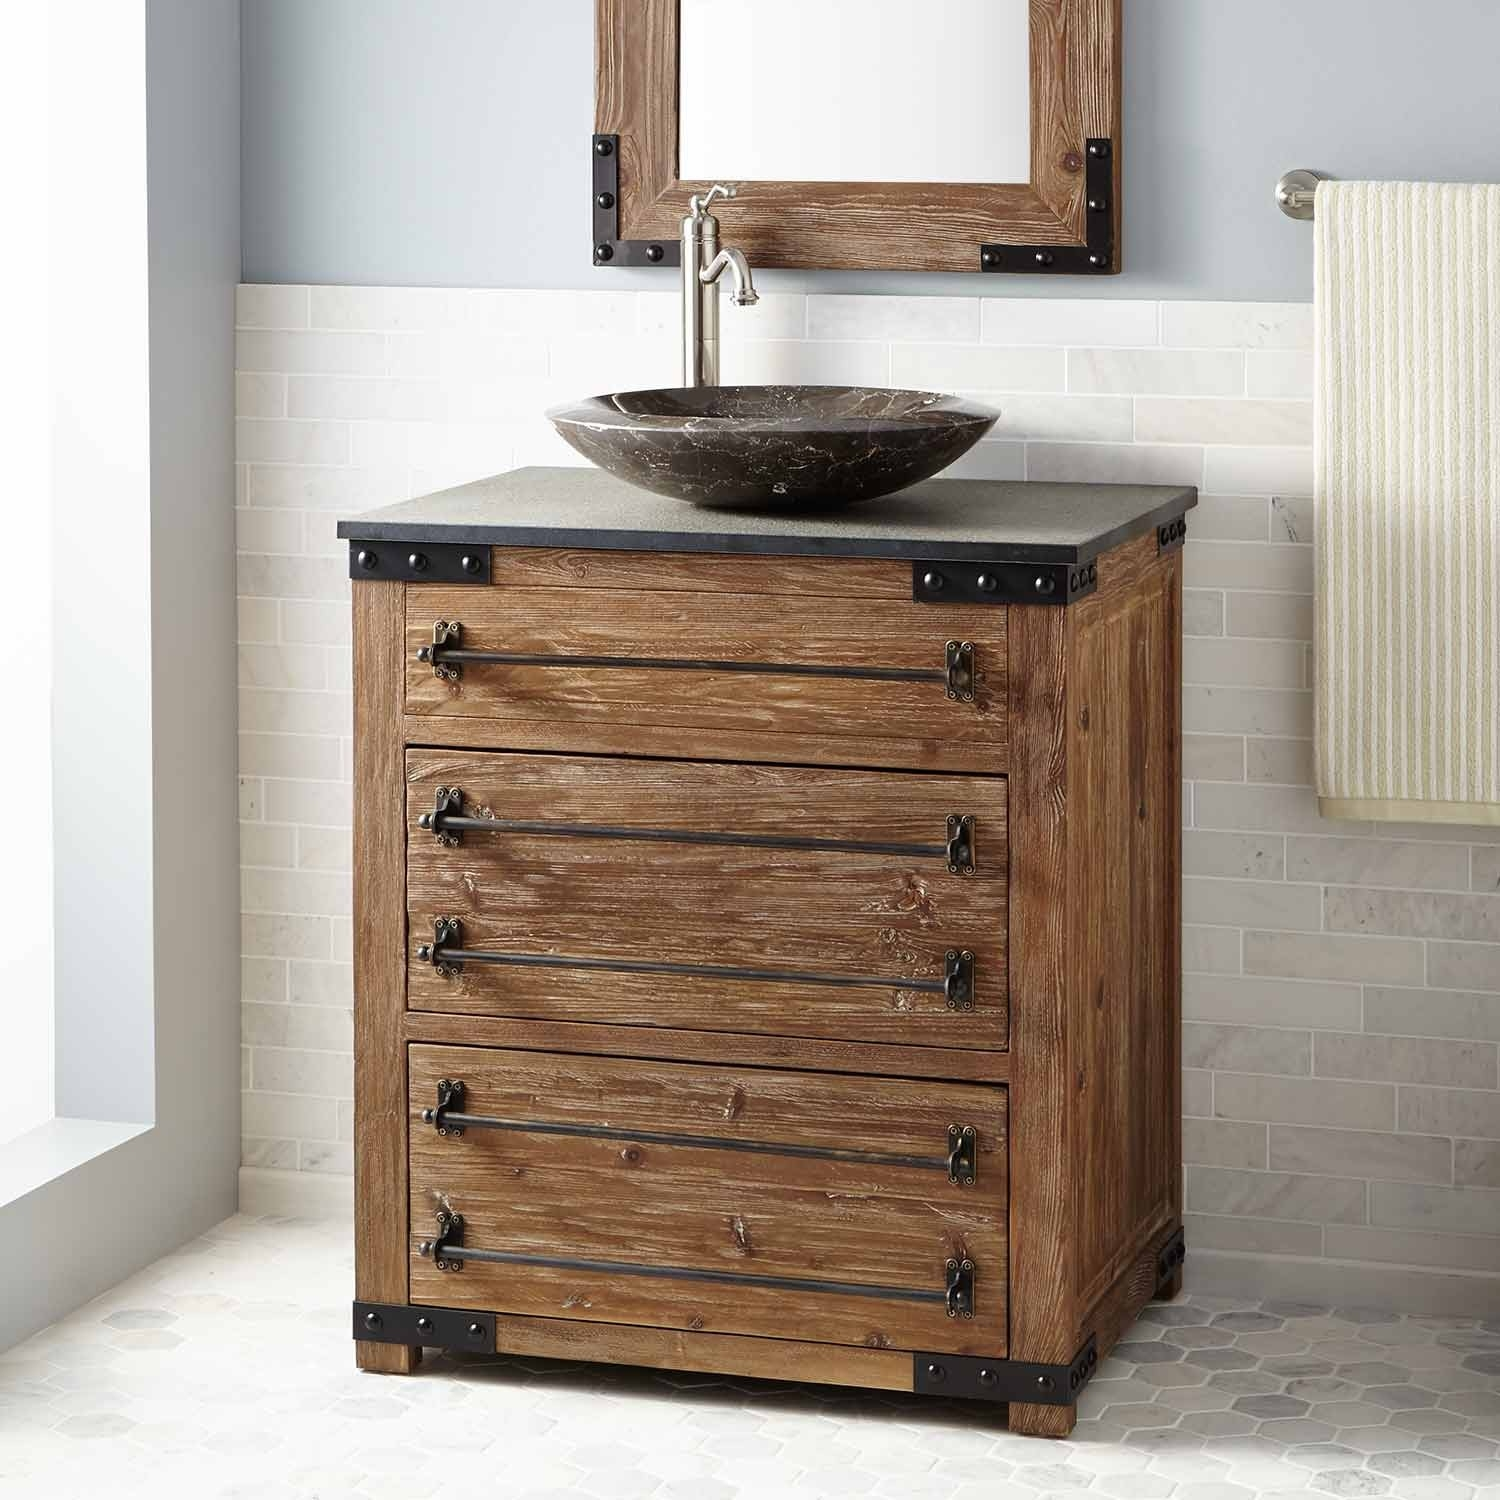 Antique Pine Bathroom Vanity Unit